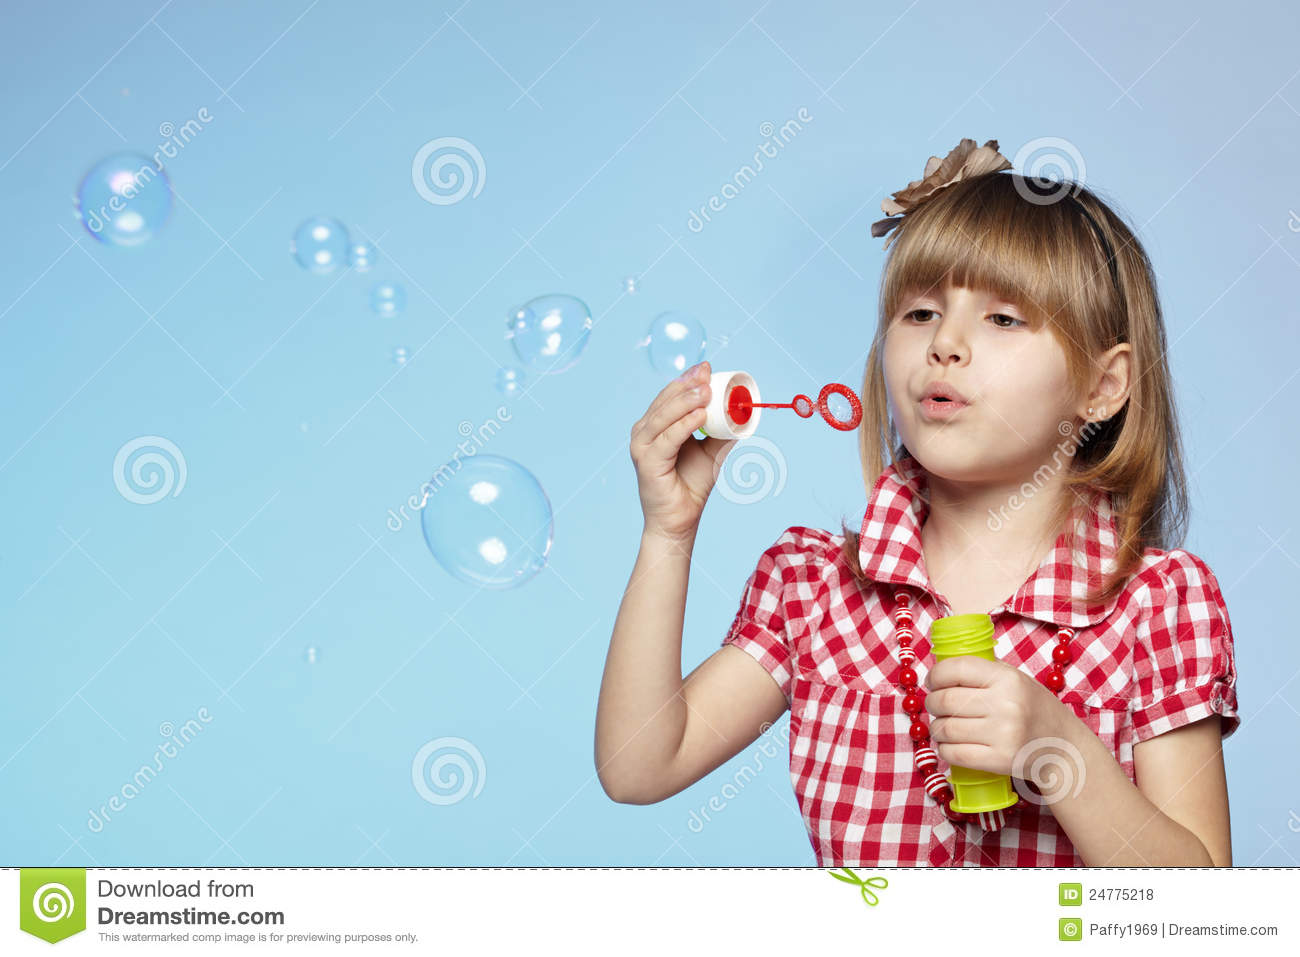 Watch How to Blow a Soap Bubble video